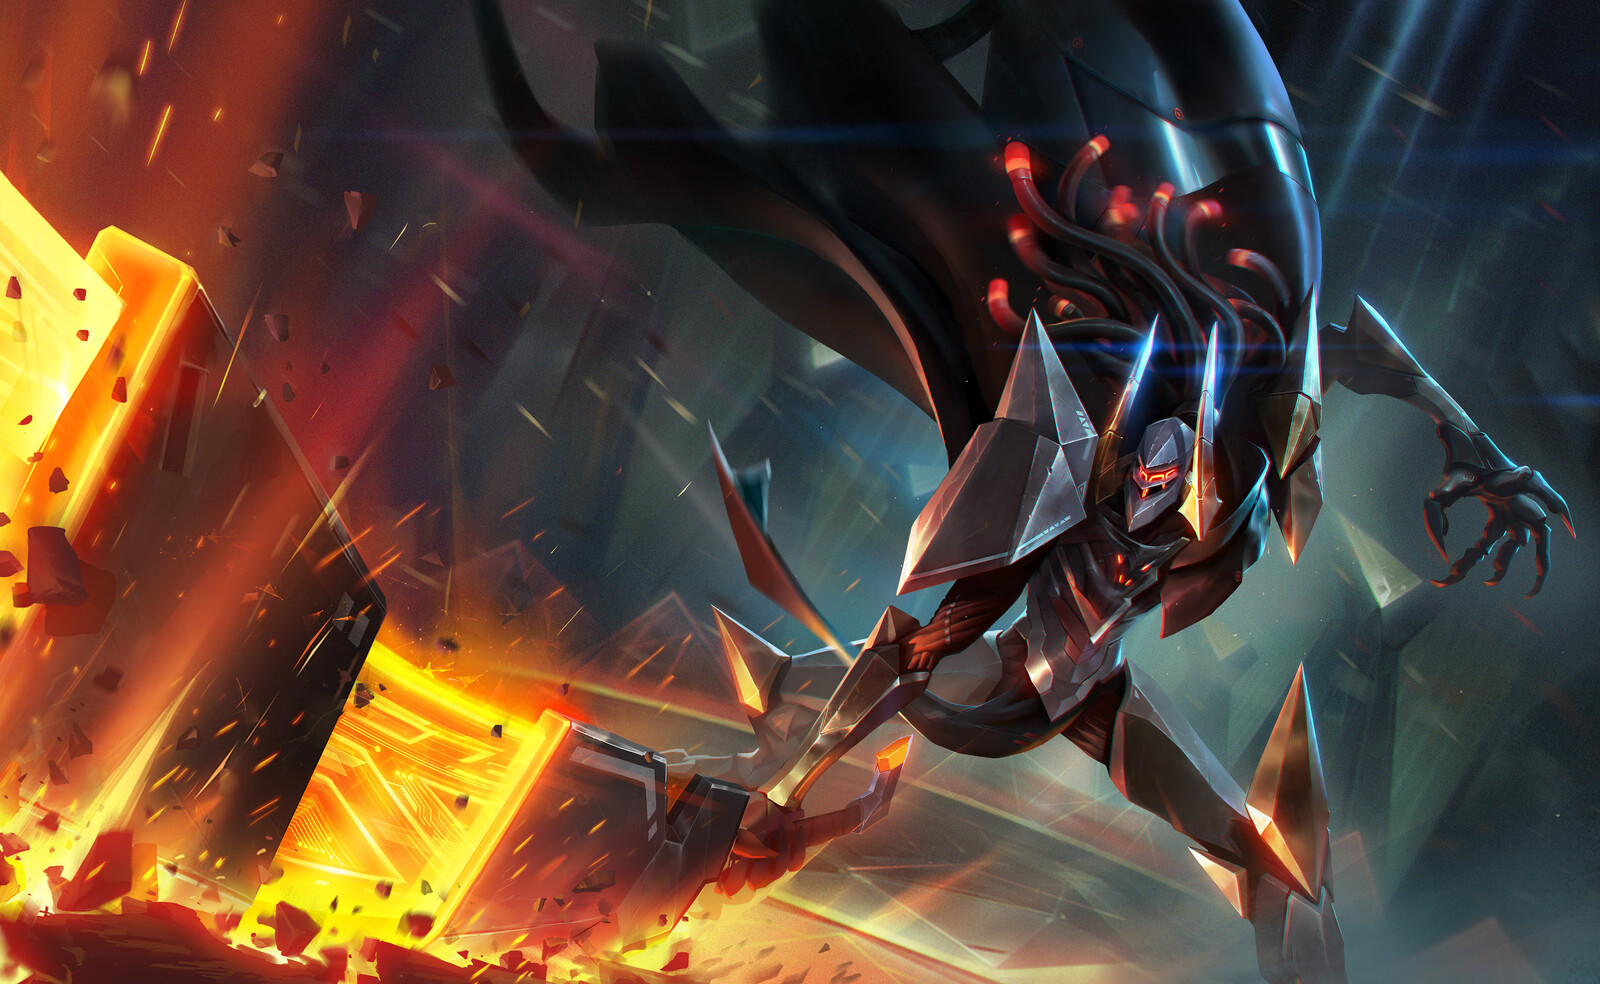 Official splash art, Original by MAR Studio.